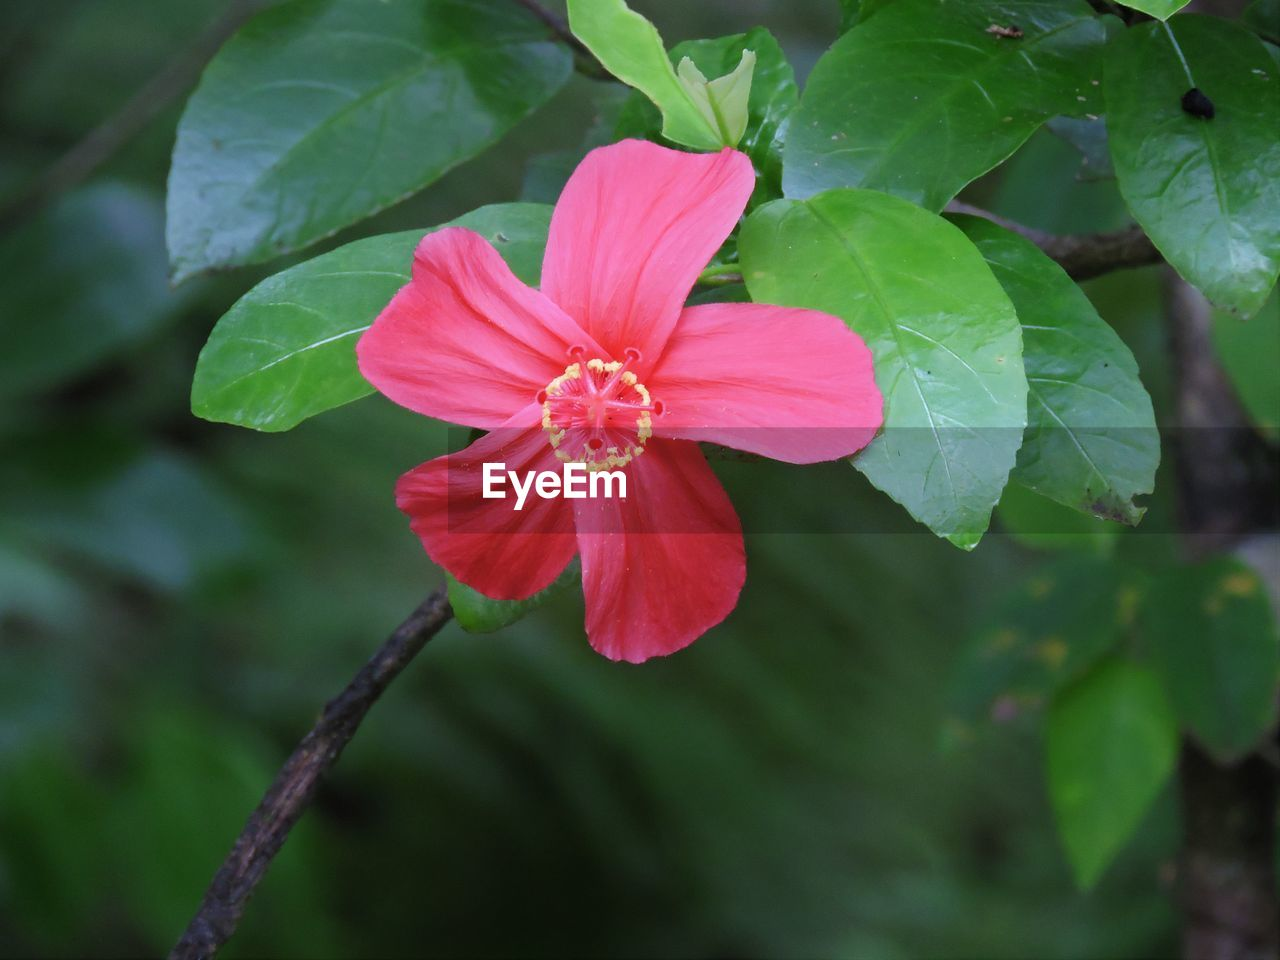 flower, petal, fragility, nature, growth, beauty in nature, flower head, freshness, leaf, plant, blooming, green color, close-up, day, outdoors, no people, pink color, periwinkle, hibiscus, zinnia